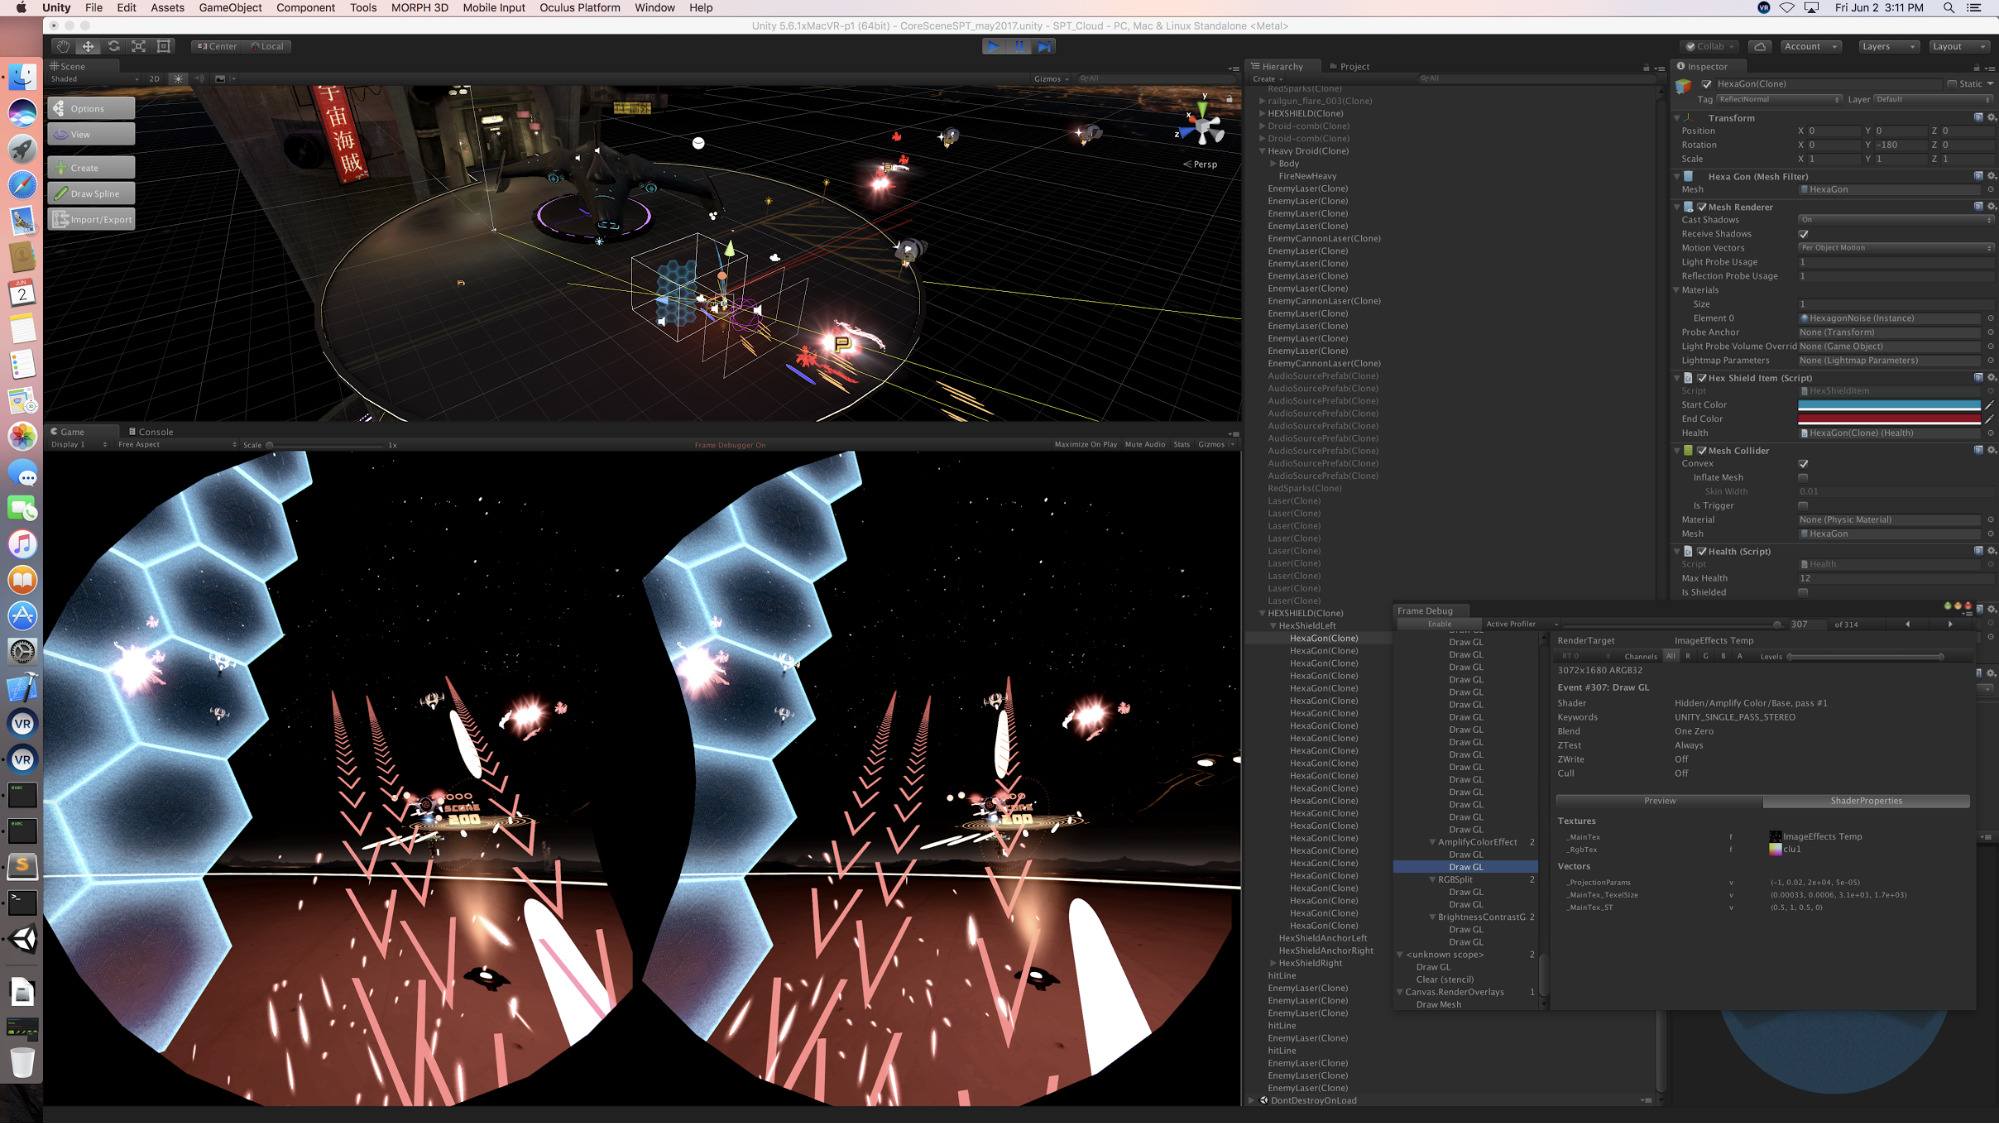 Unity editor screen view of macOS with game Space Pirate Trainer in VR mode